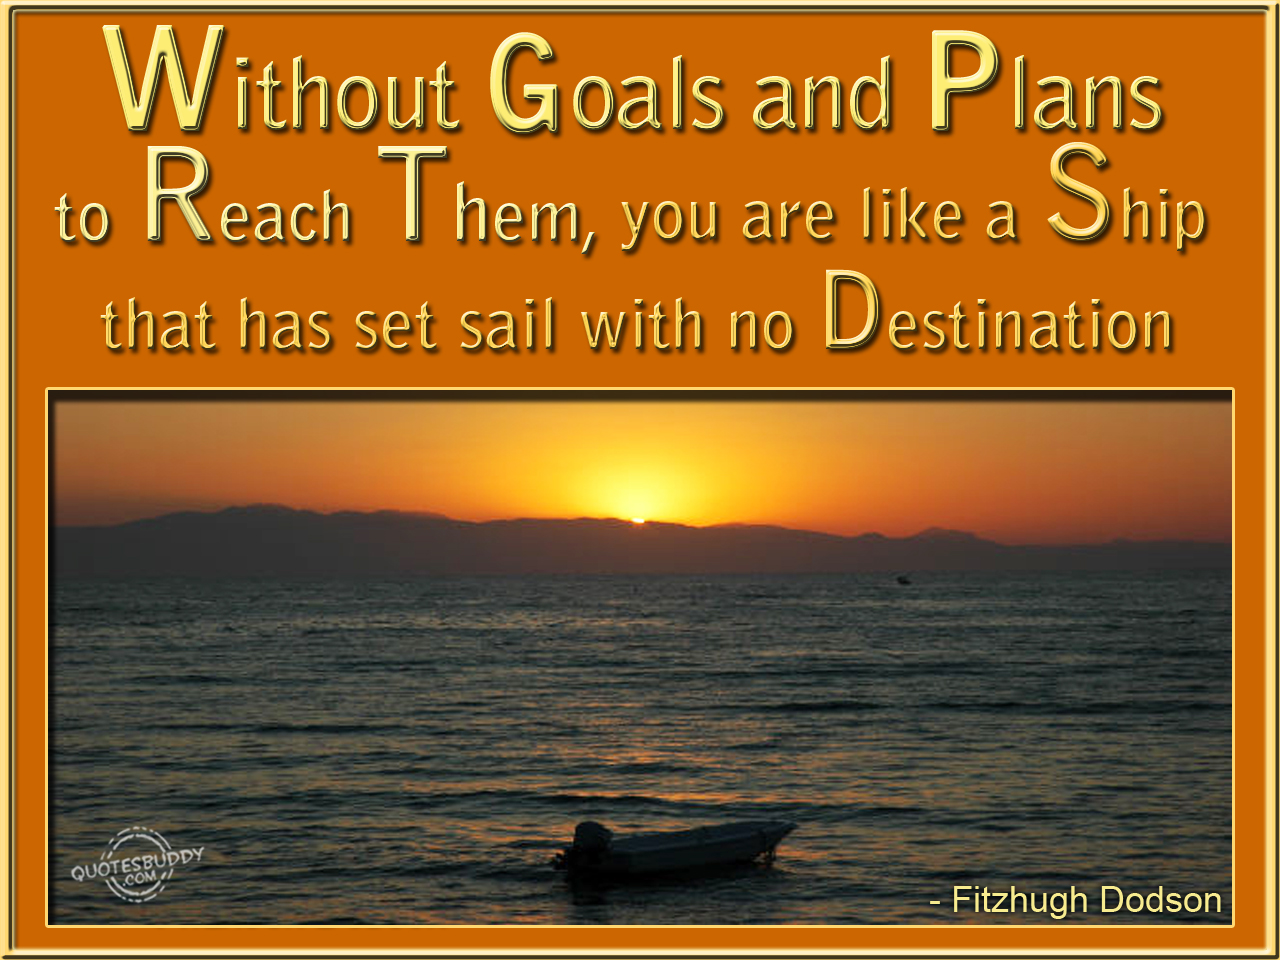 Quotes About Love And Sailing Quotesgram: Quotes On Goals And Objectives. QuotesGram